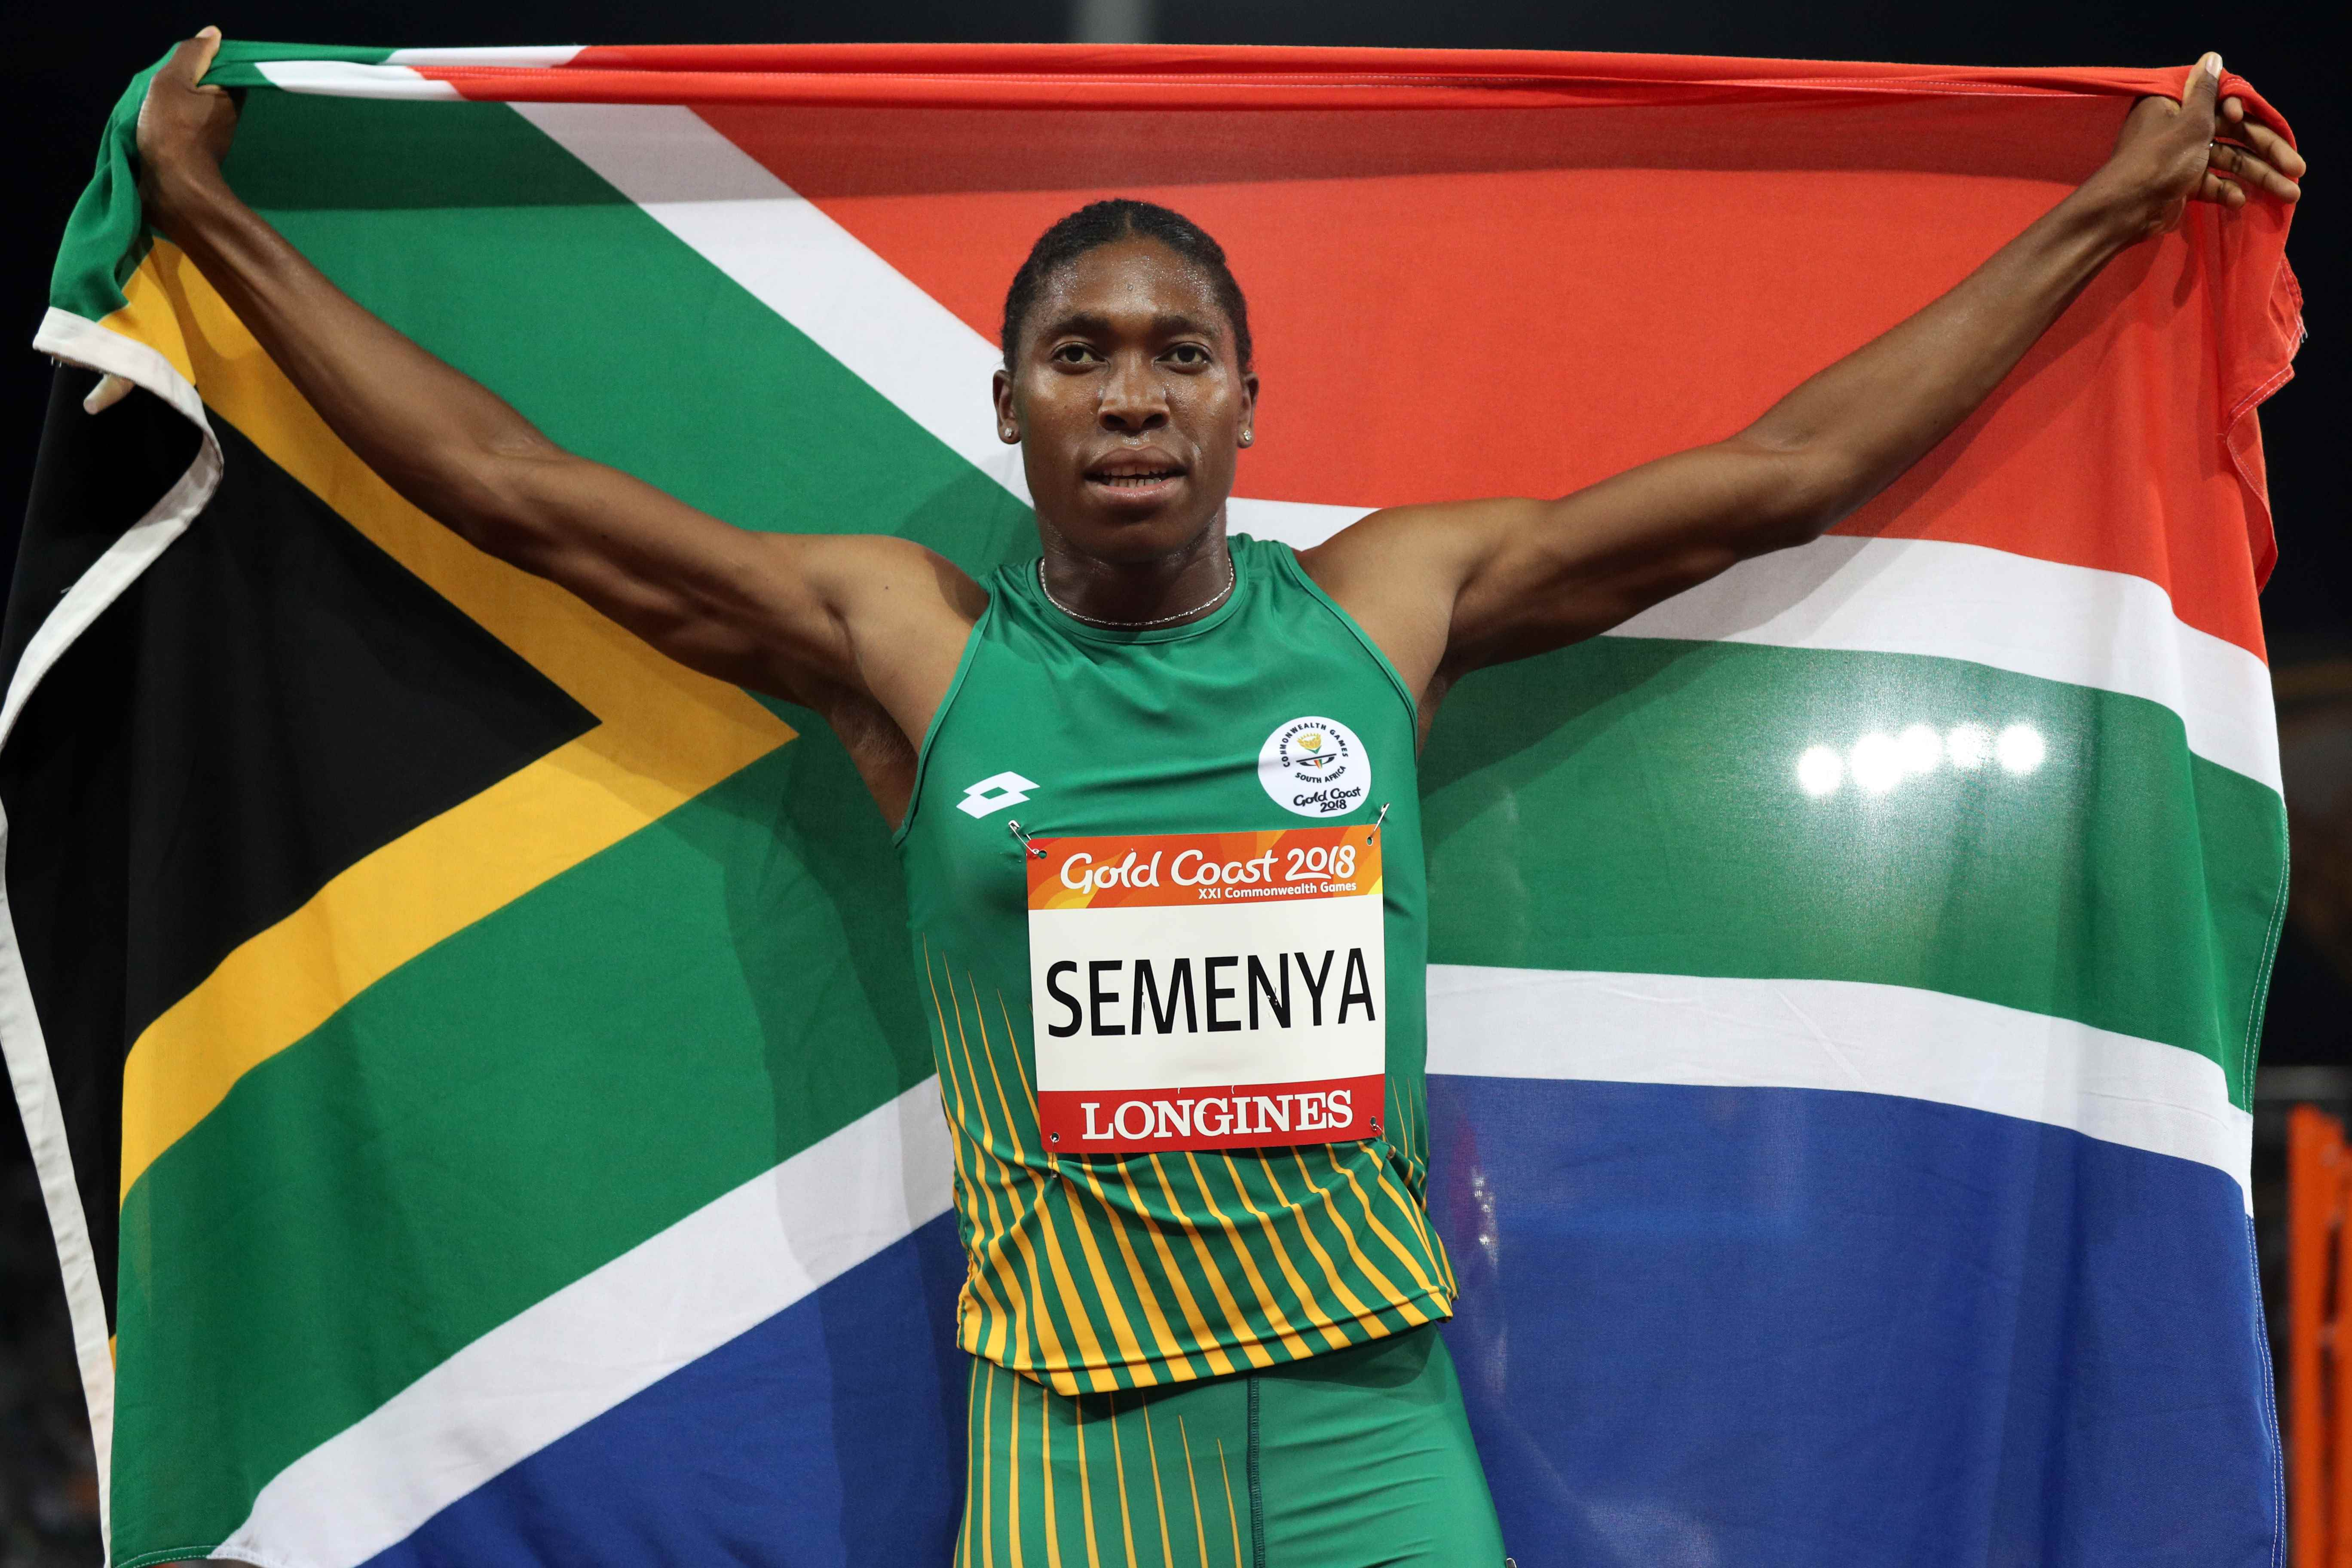 The South African has been dogged by questions since 2009, when it was reported that the IAAF forced her to undergo a gender test after the 800m at the world athletics championships